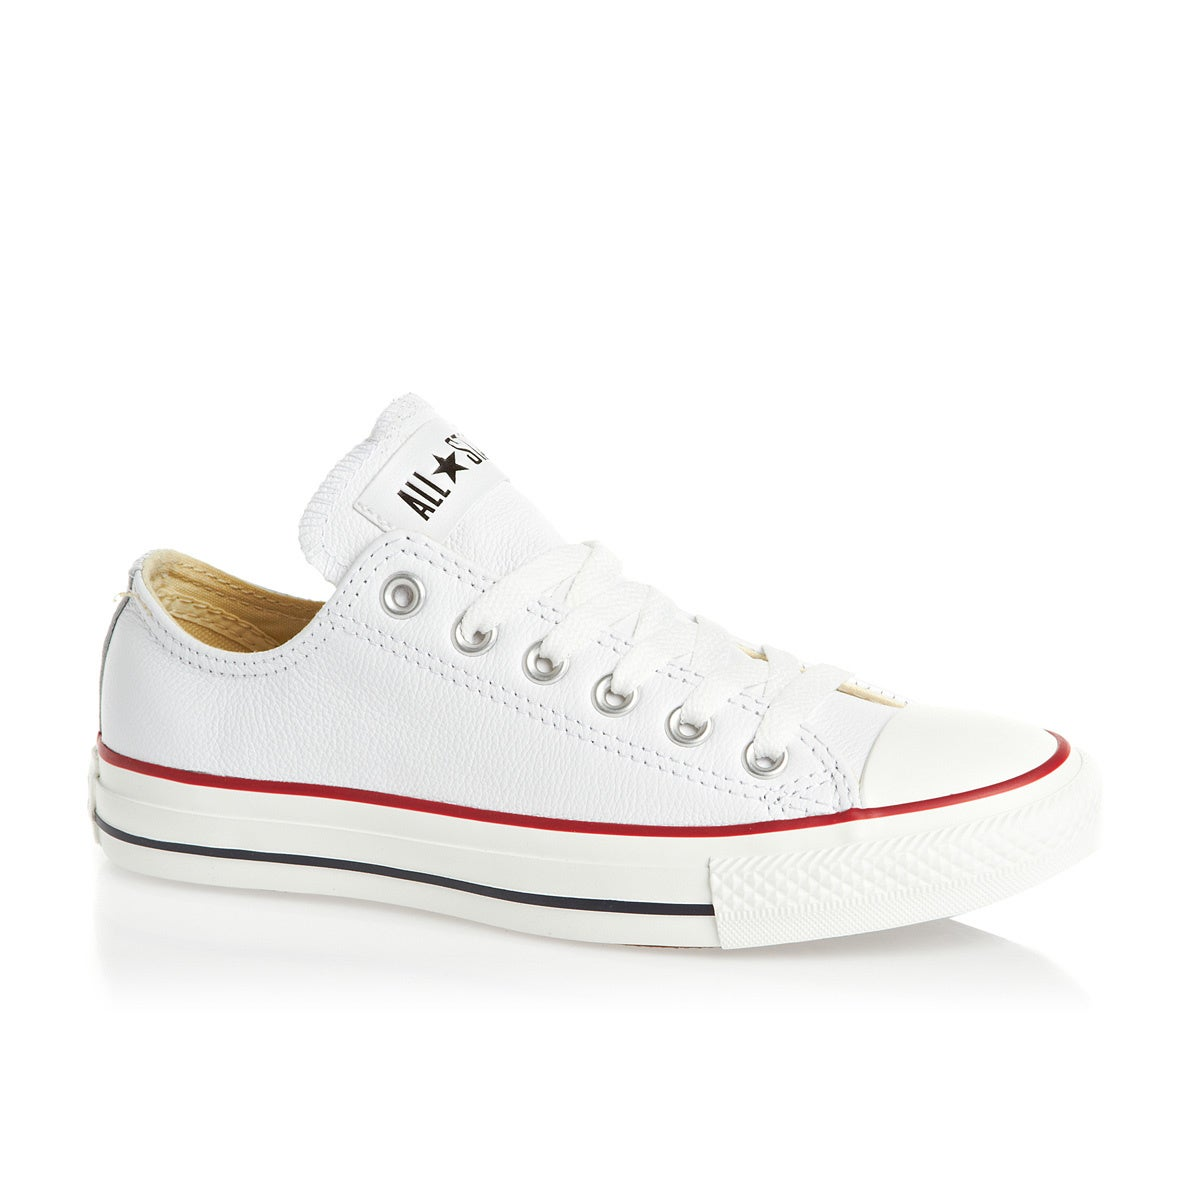 124756bee3 Converse Chuck Taylor All Stars Ox Leather Shoes available from Surfdome